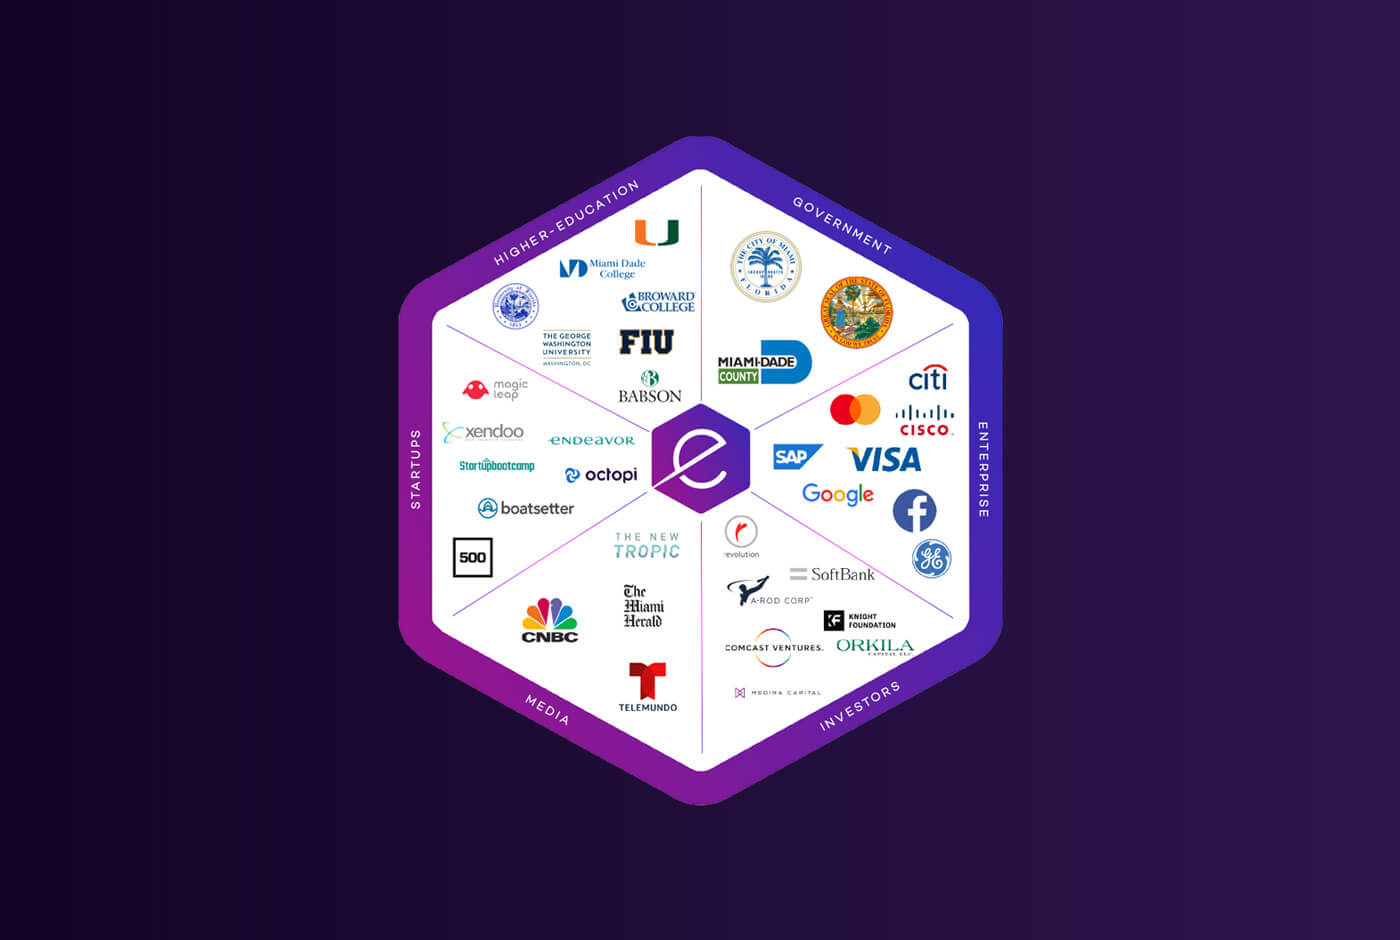 eMerge Americas - About